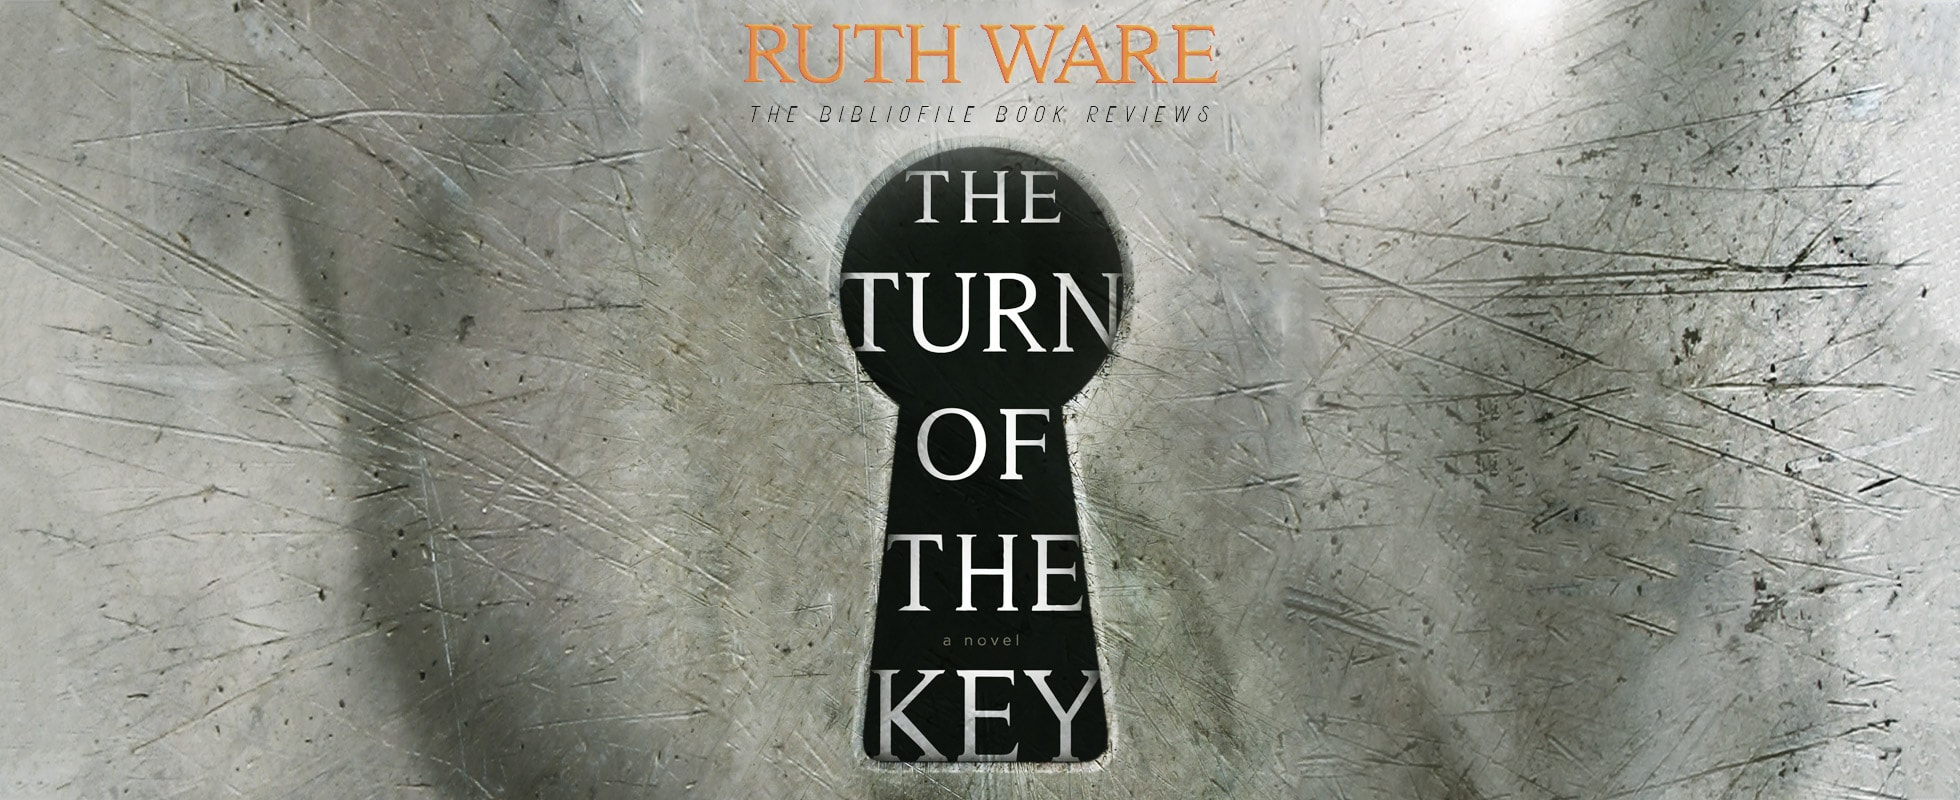 turn of the key ruth ware summary review